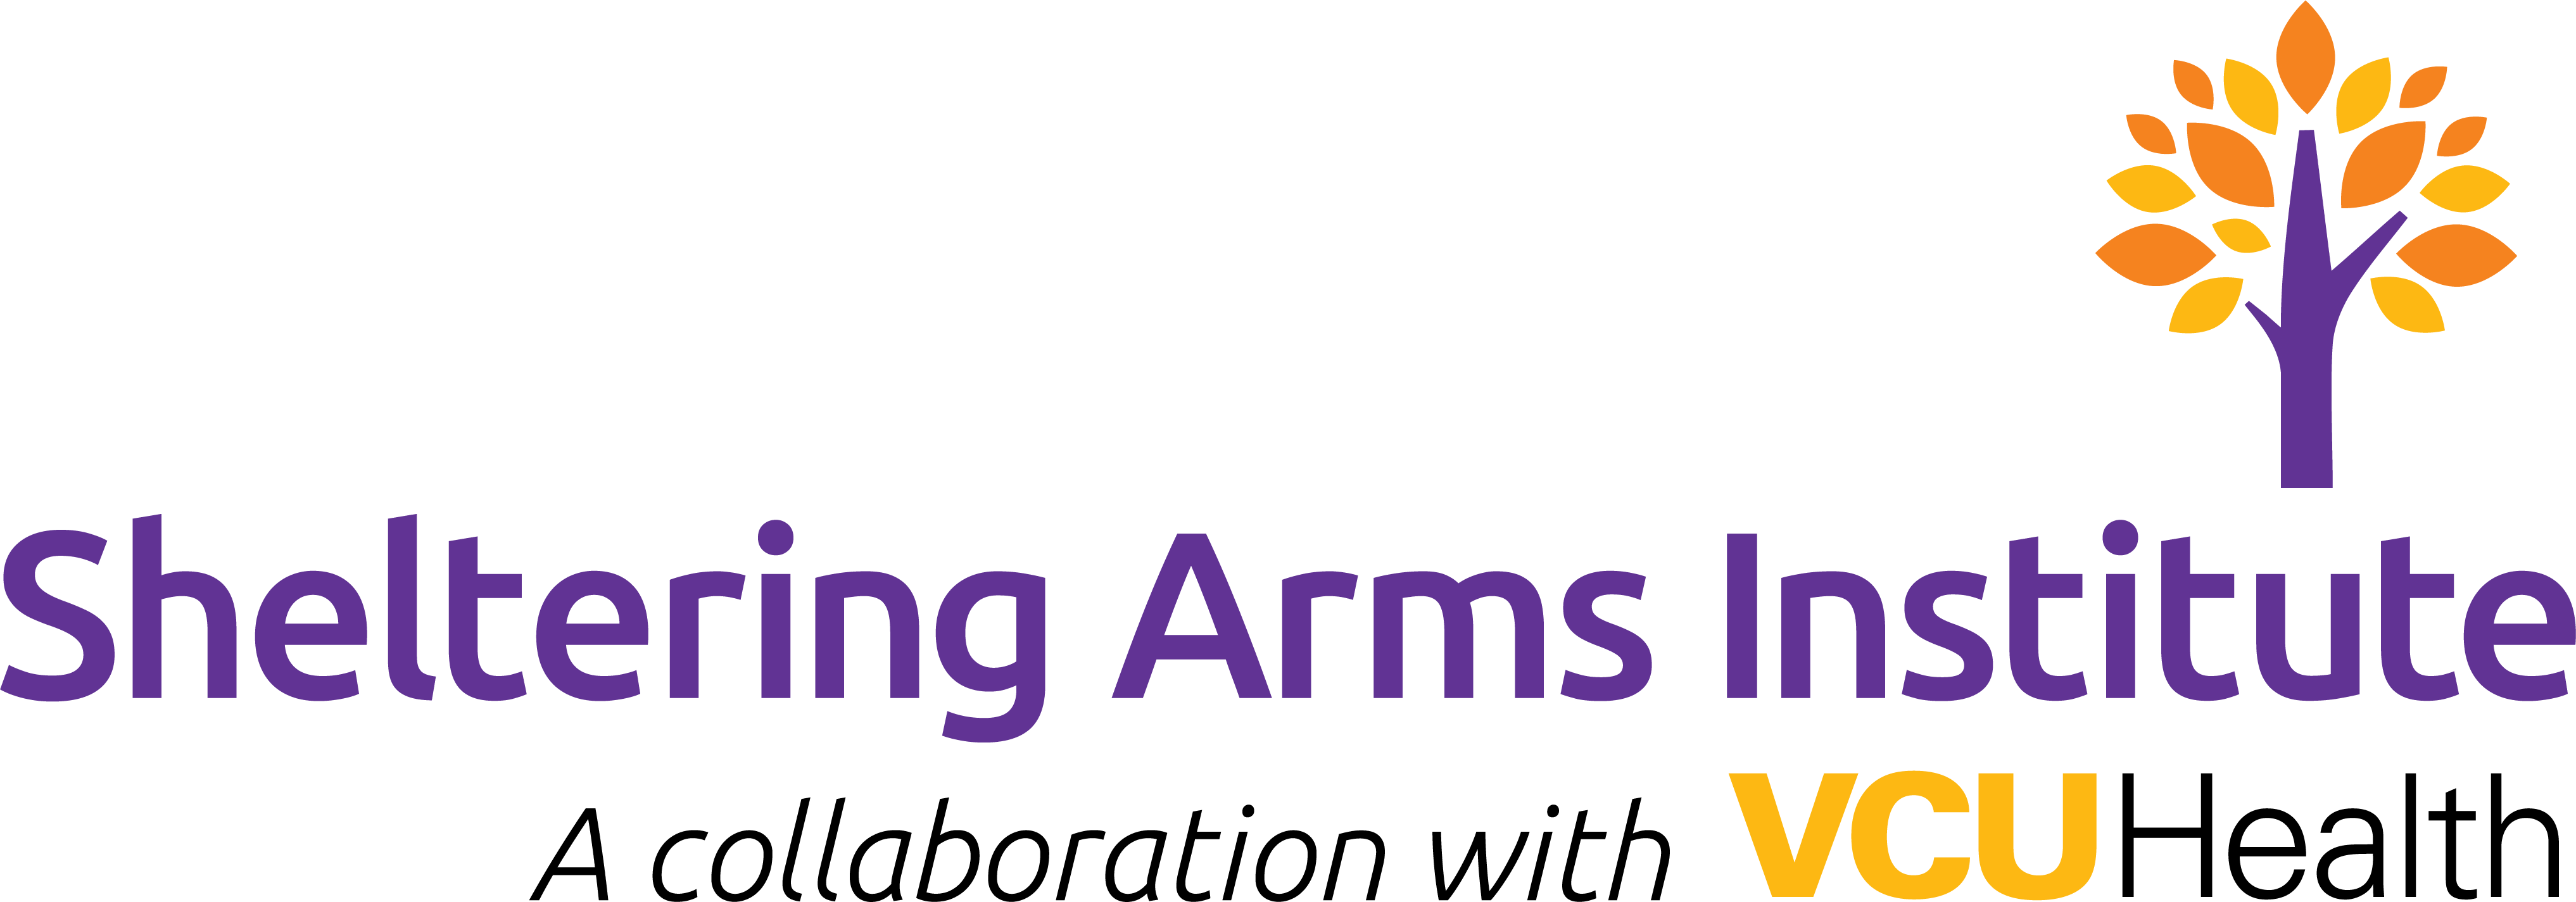 2020.0508 Sheltering Arms Institute